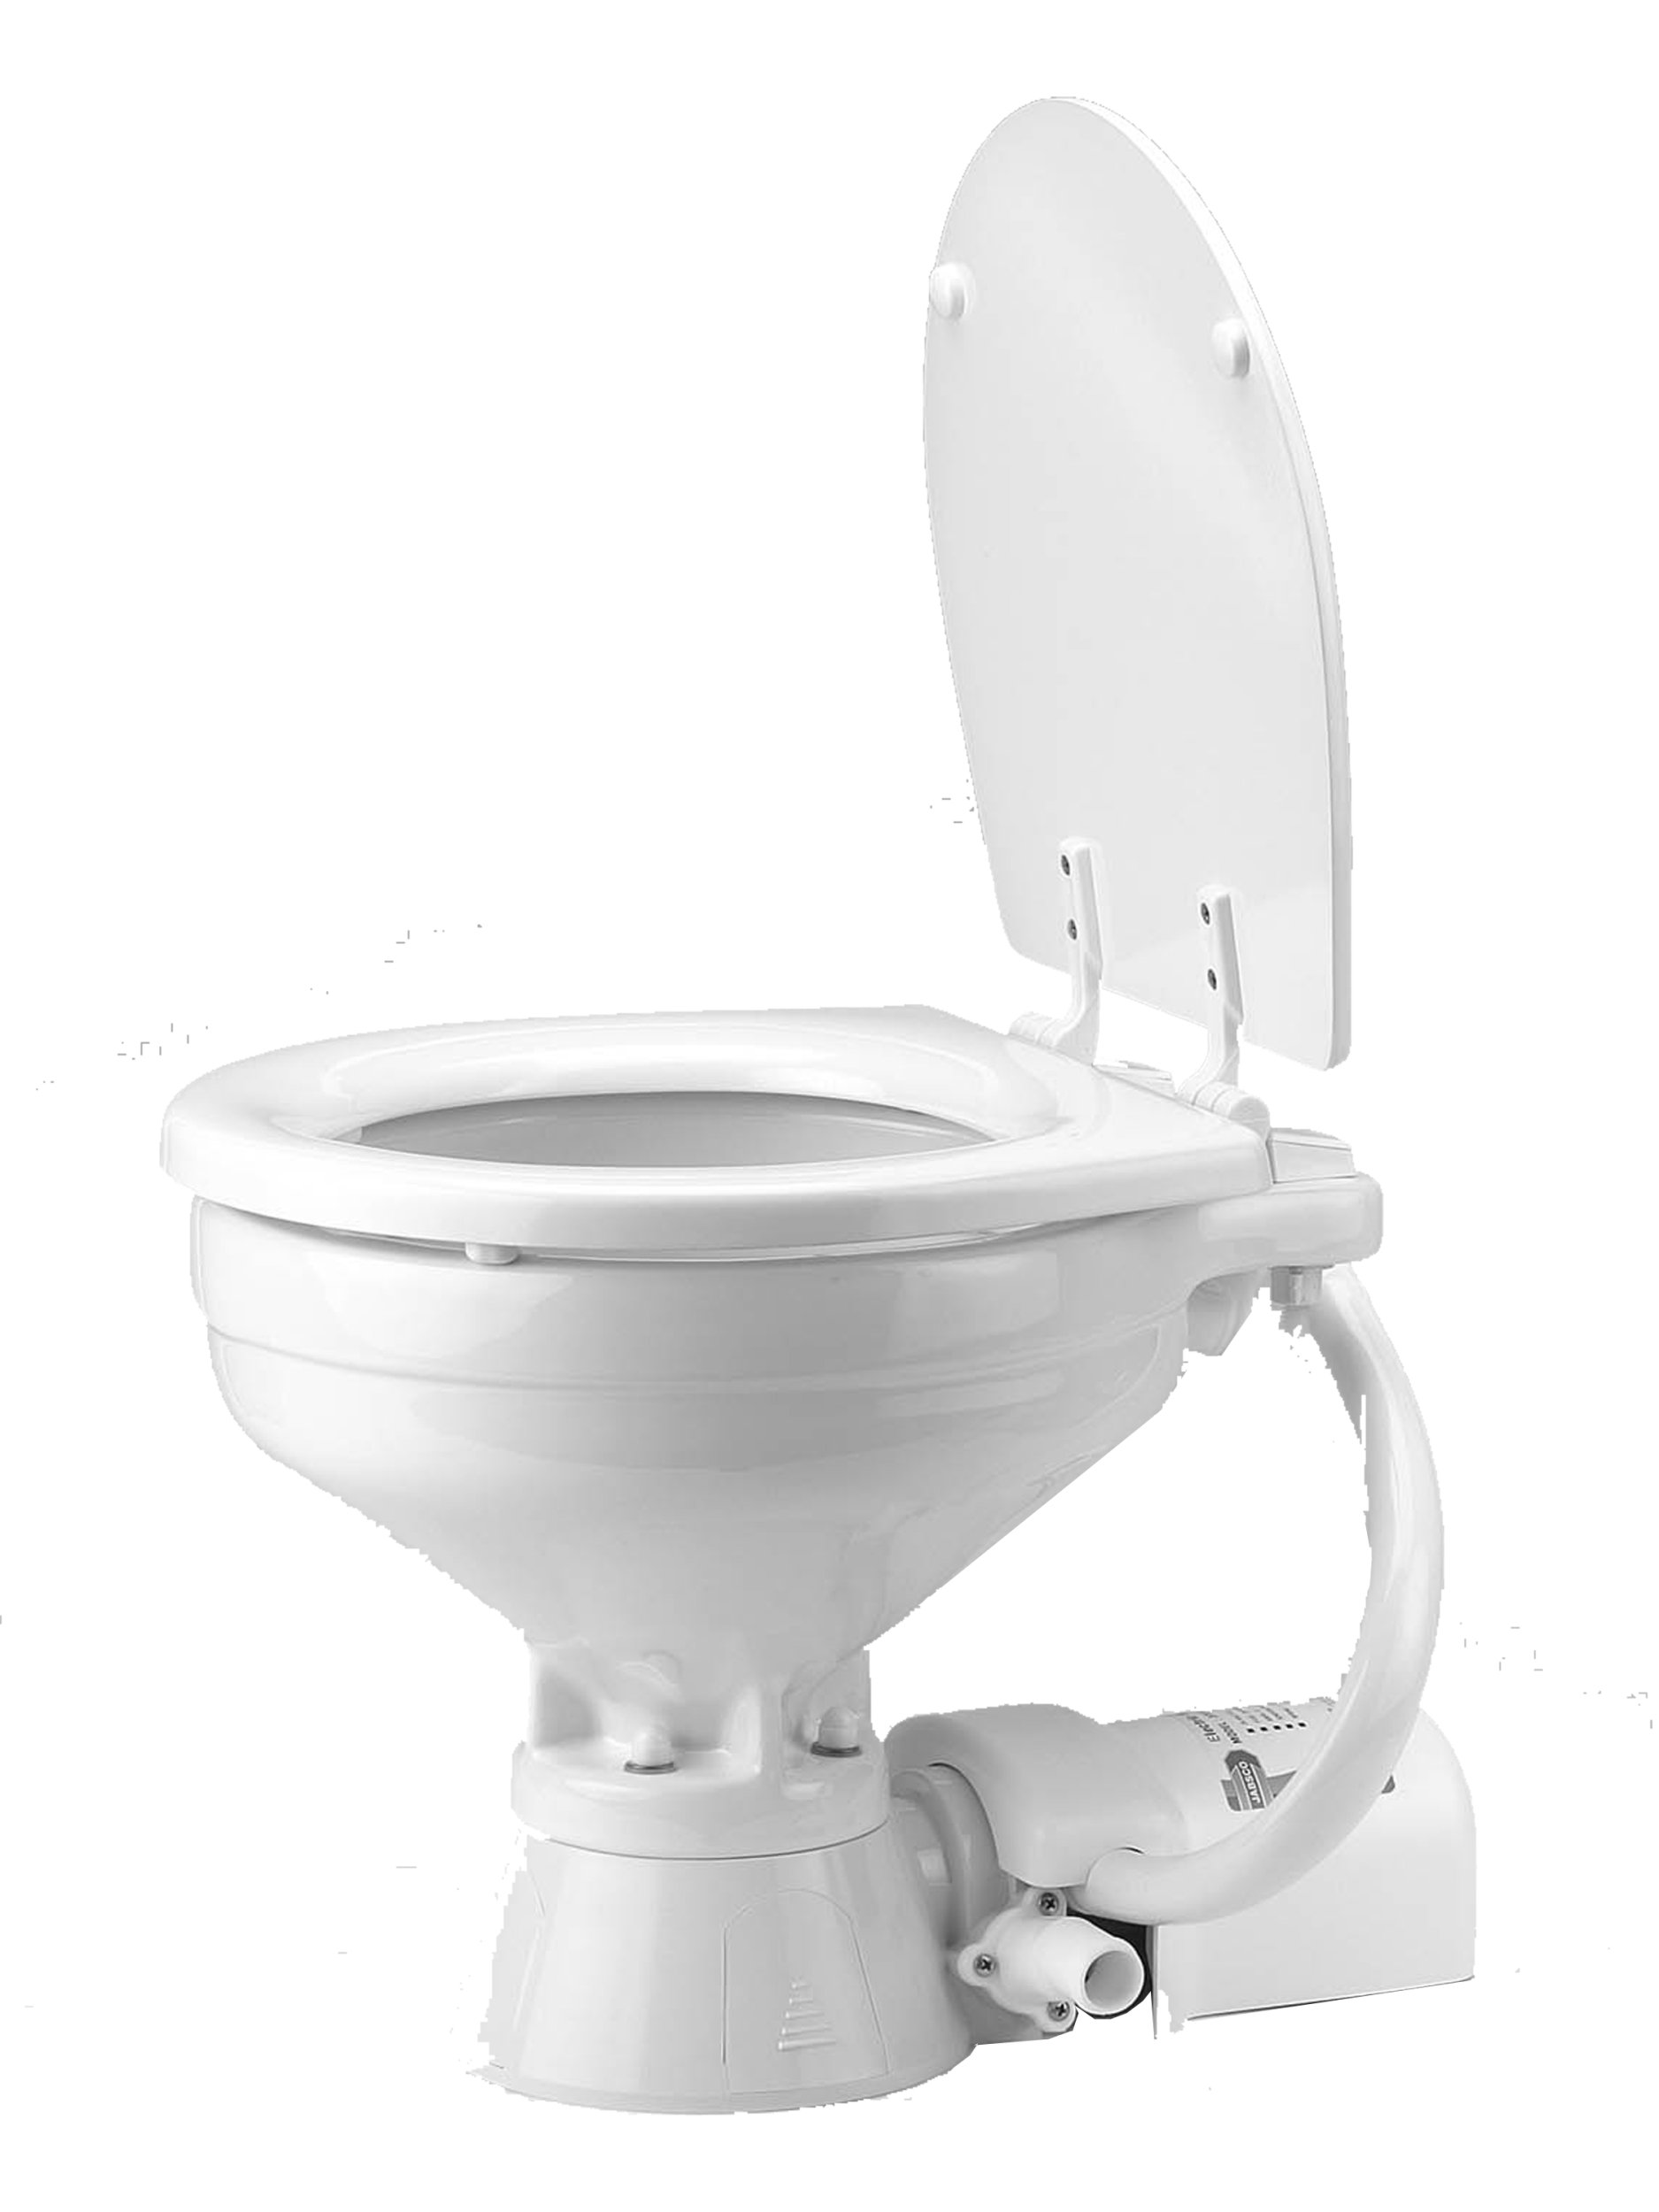 Jabsco 37010-1090 Electric Marine Toilet, Push Button Operation, Macerator, Household Size, 12 Volt